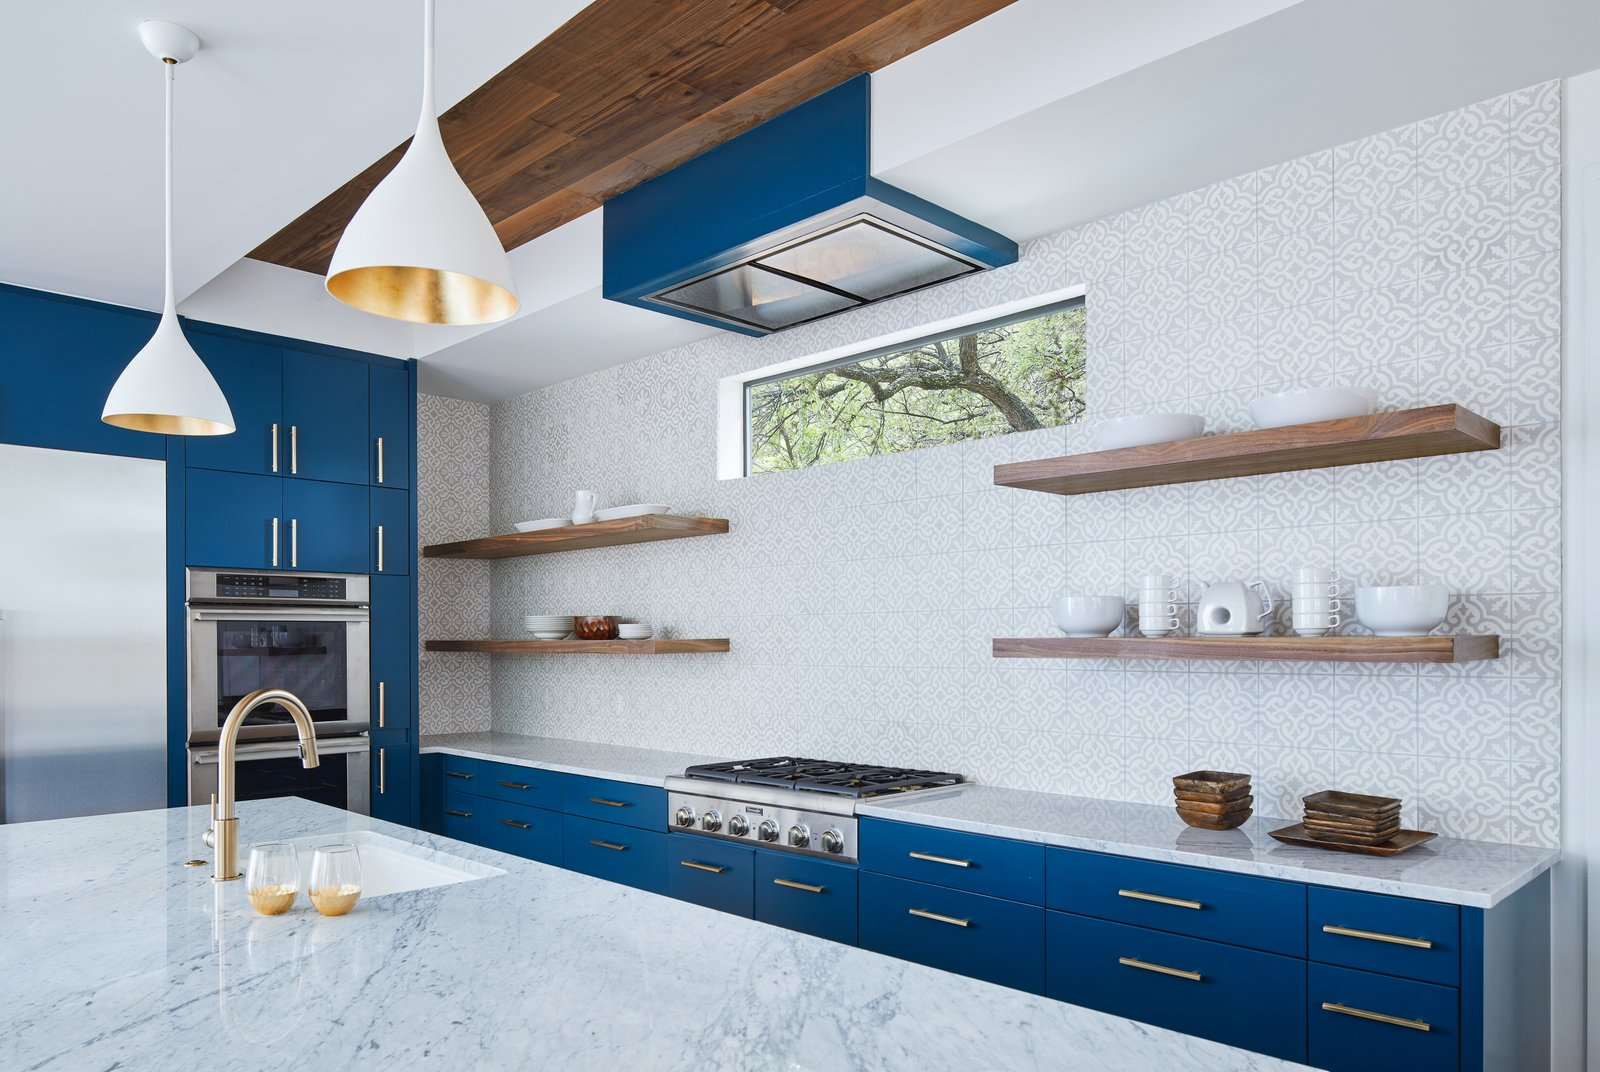 Kitchen, Refrigerator, Wine Cooler, Marble, Range Hood, Wall Oven, Colorful, Concrete, Dark Hardwood, Stone Tile, Cooktops, Pendant, Ceramic Tile, Ceiling, and Undermount Kitchen  Kitchen Cooktops Undermount Wall Oven Ceramic Tile Concrete Photos from Chelsea House